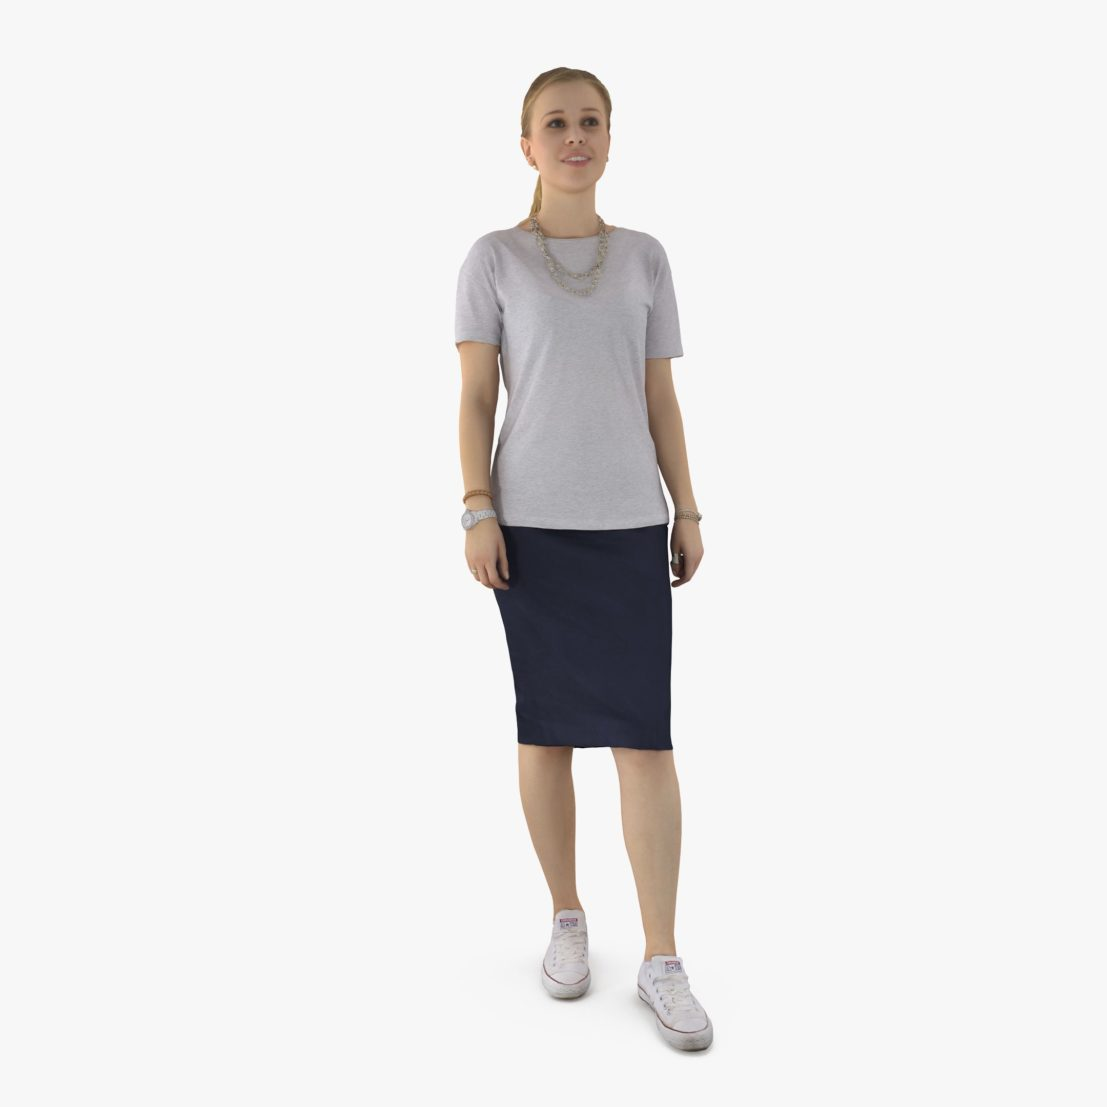 Casual Girl Smiling 3D Model | 3DTree Scanning Studio